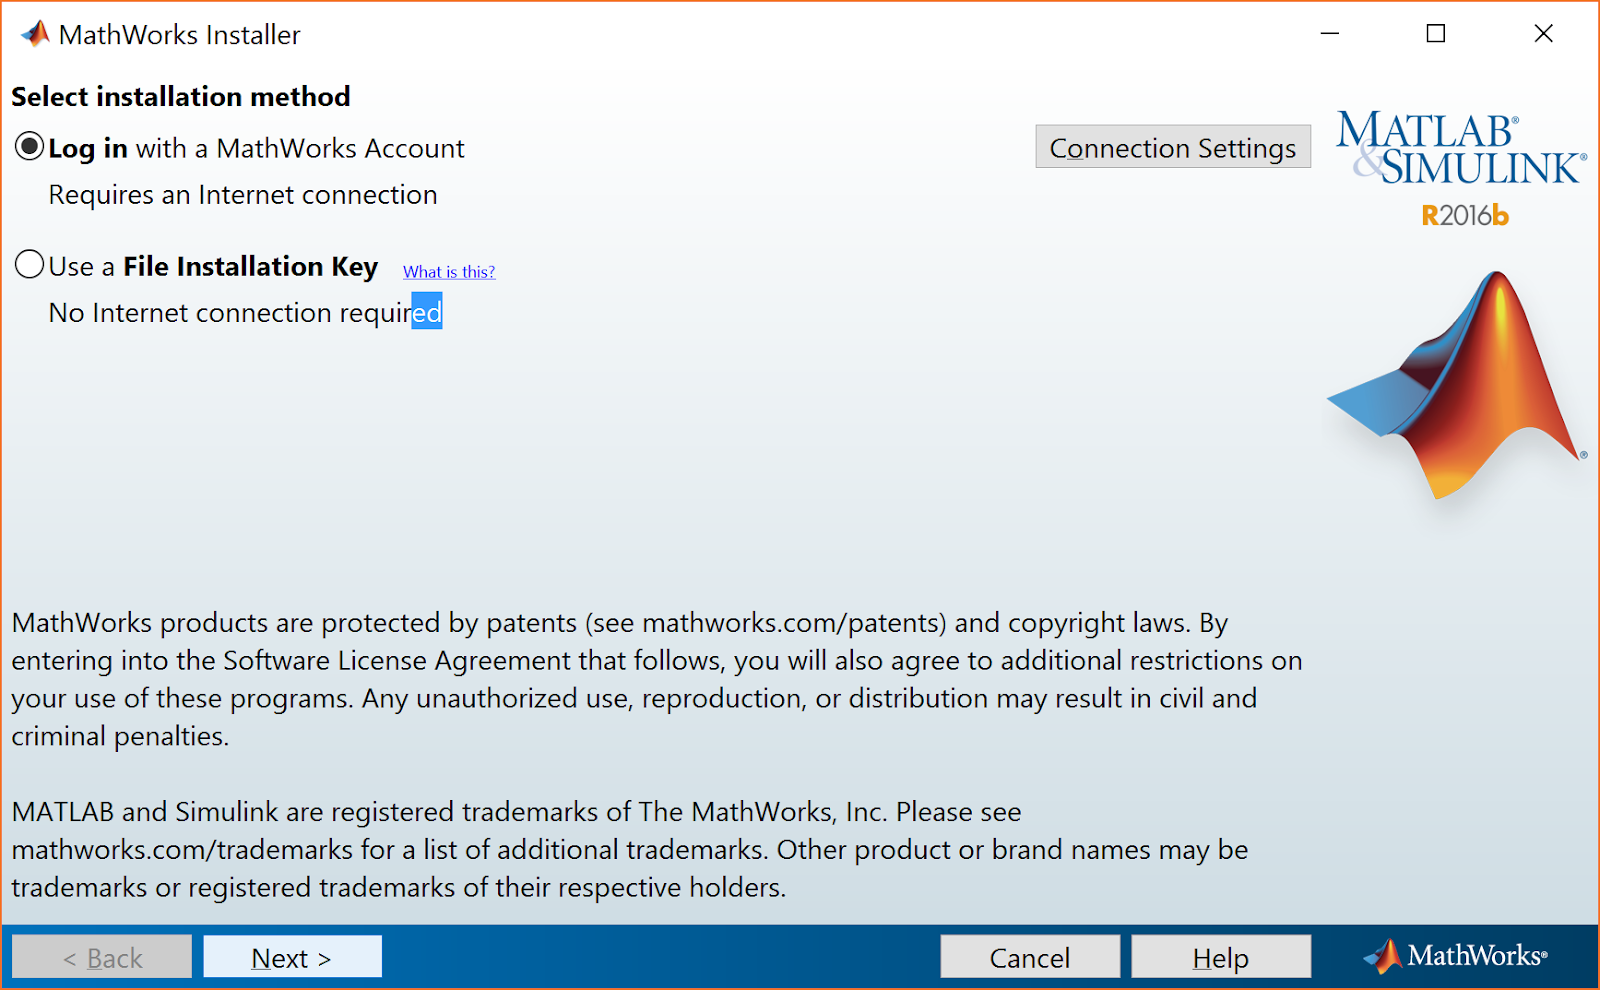 matlab student version no cost computer labs laptops in the mathworks installer select log in a mathworks account and follow the online instructions